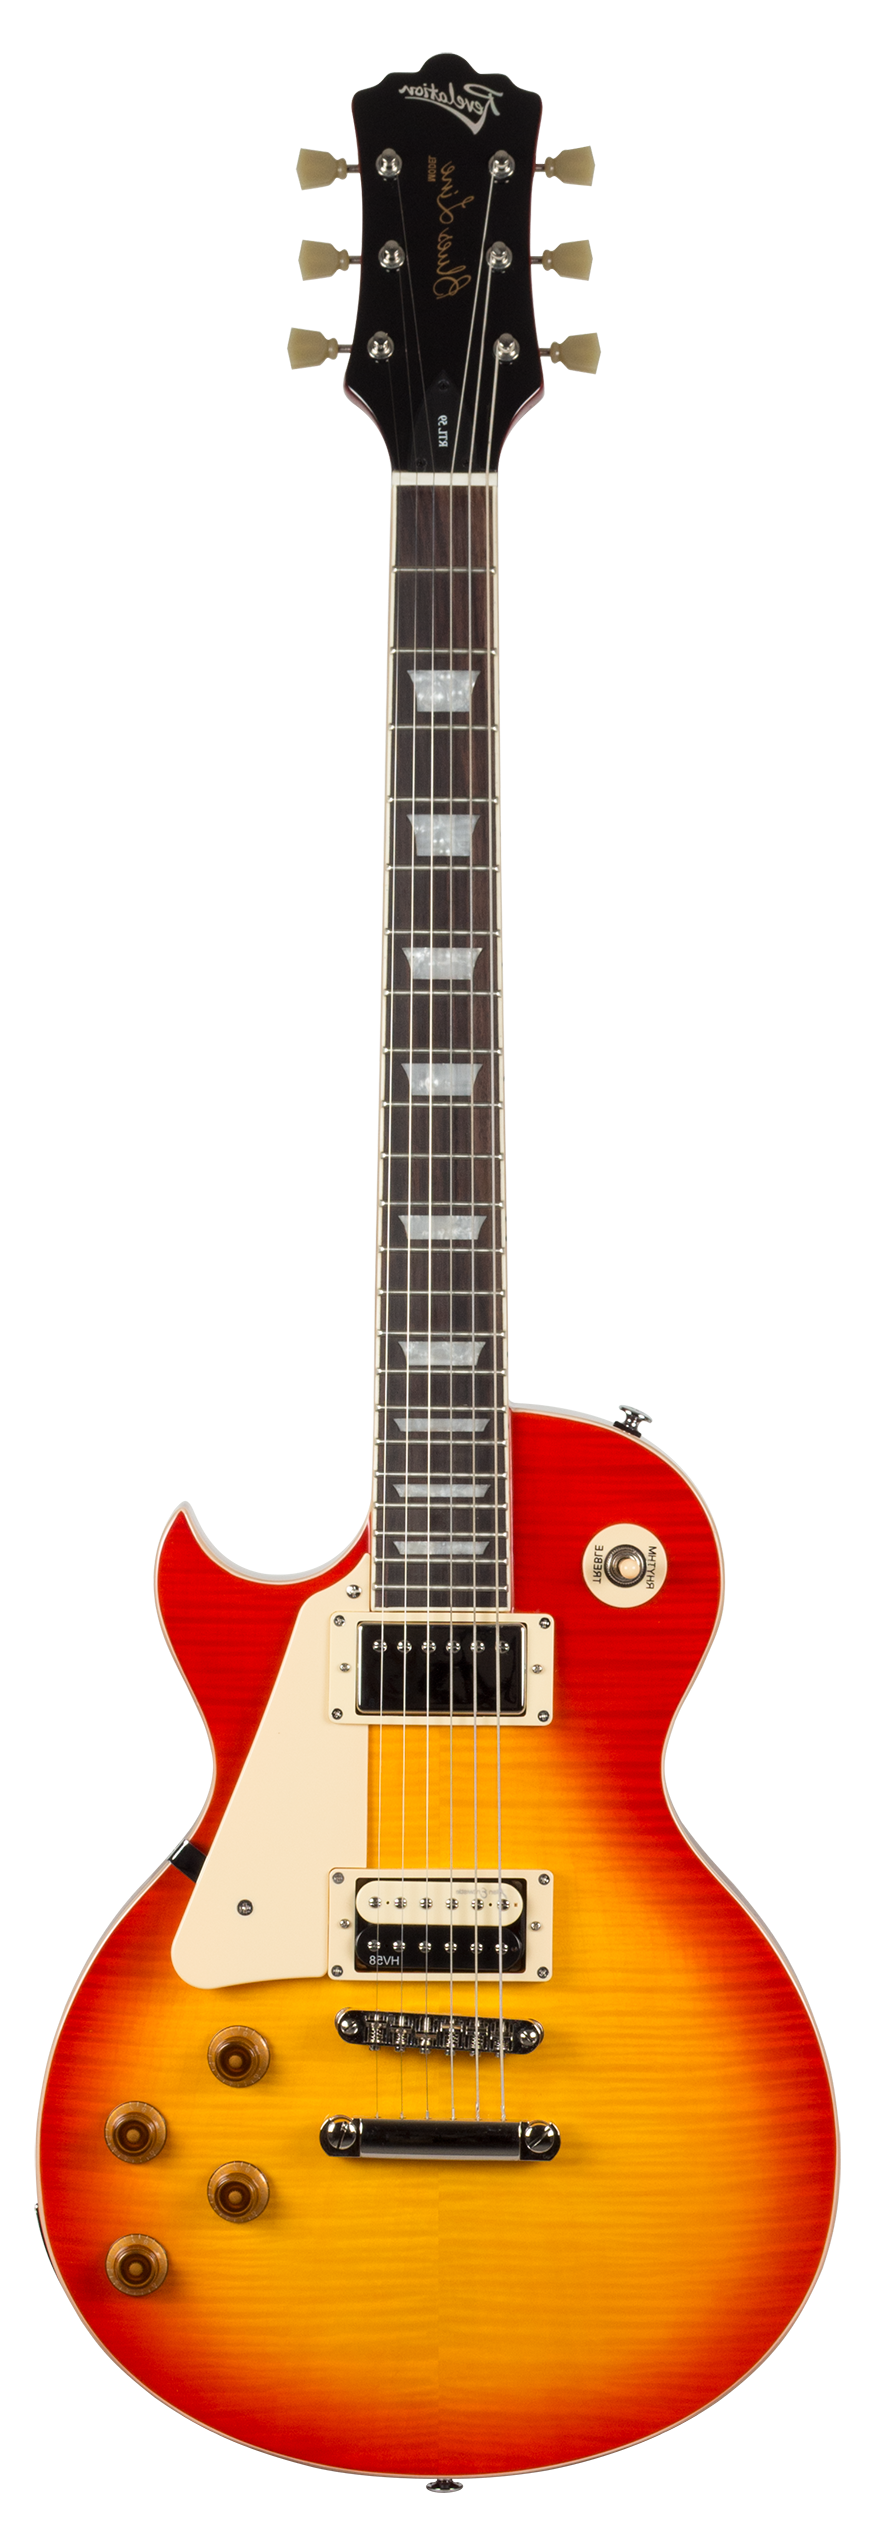 Revelation RTL59 Cherry Electric Guitar Left Handed